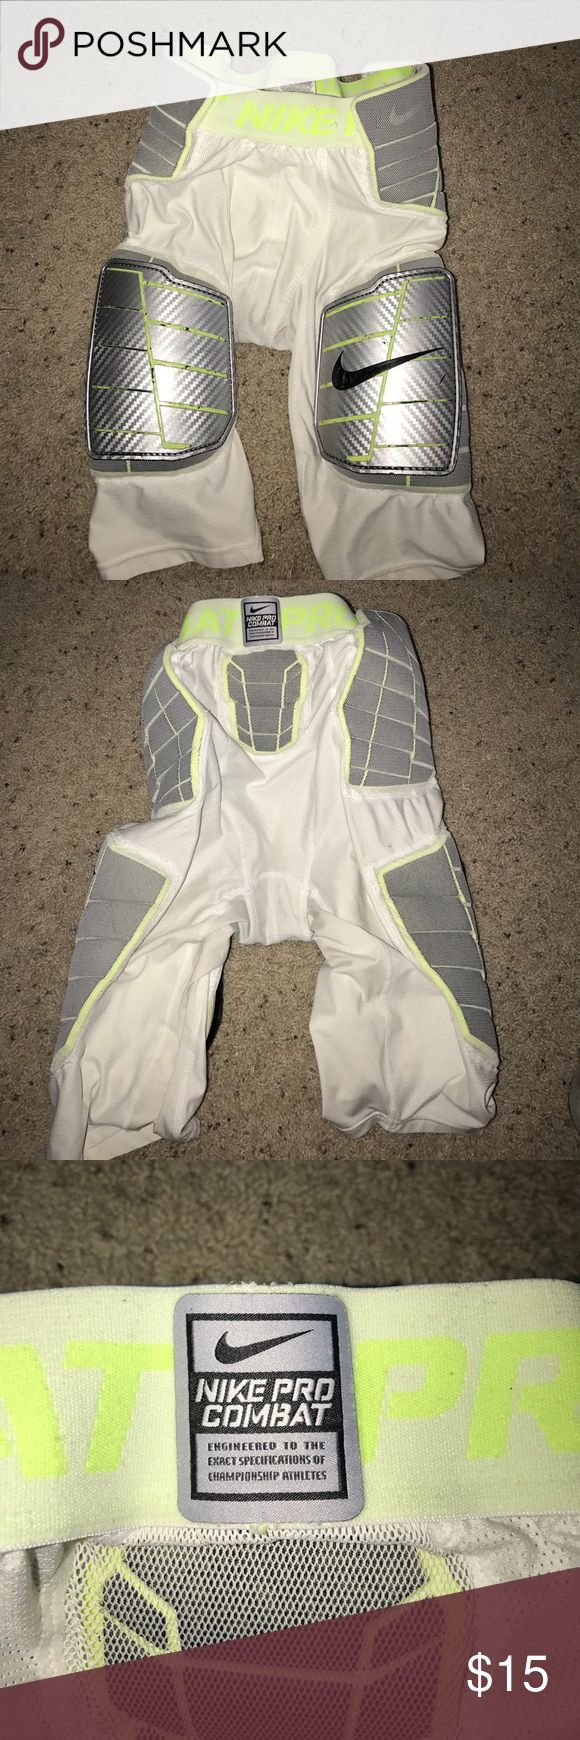 Nike Pro Combat Football Girdle Size: L Football girdle. Fits comfortably and protects well. Worn at practice for half of a season. I have two that are larges Nike Other